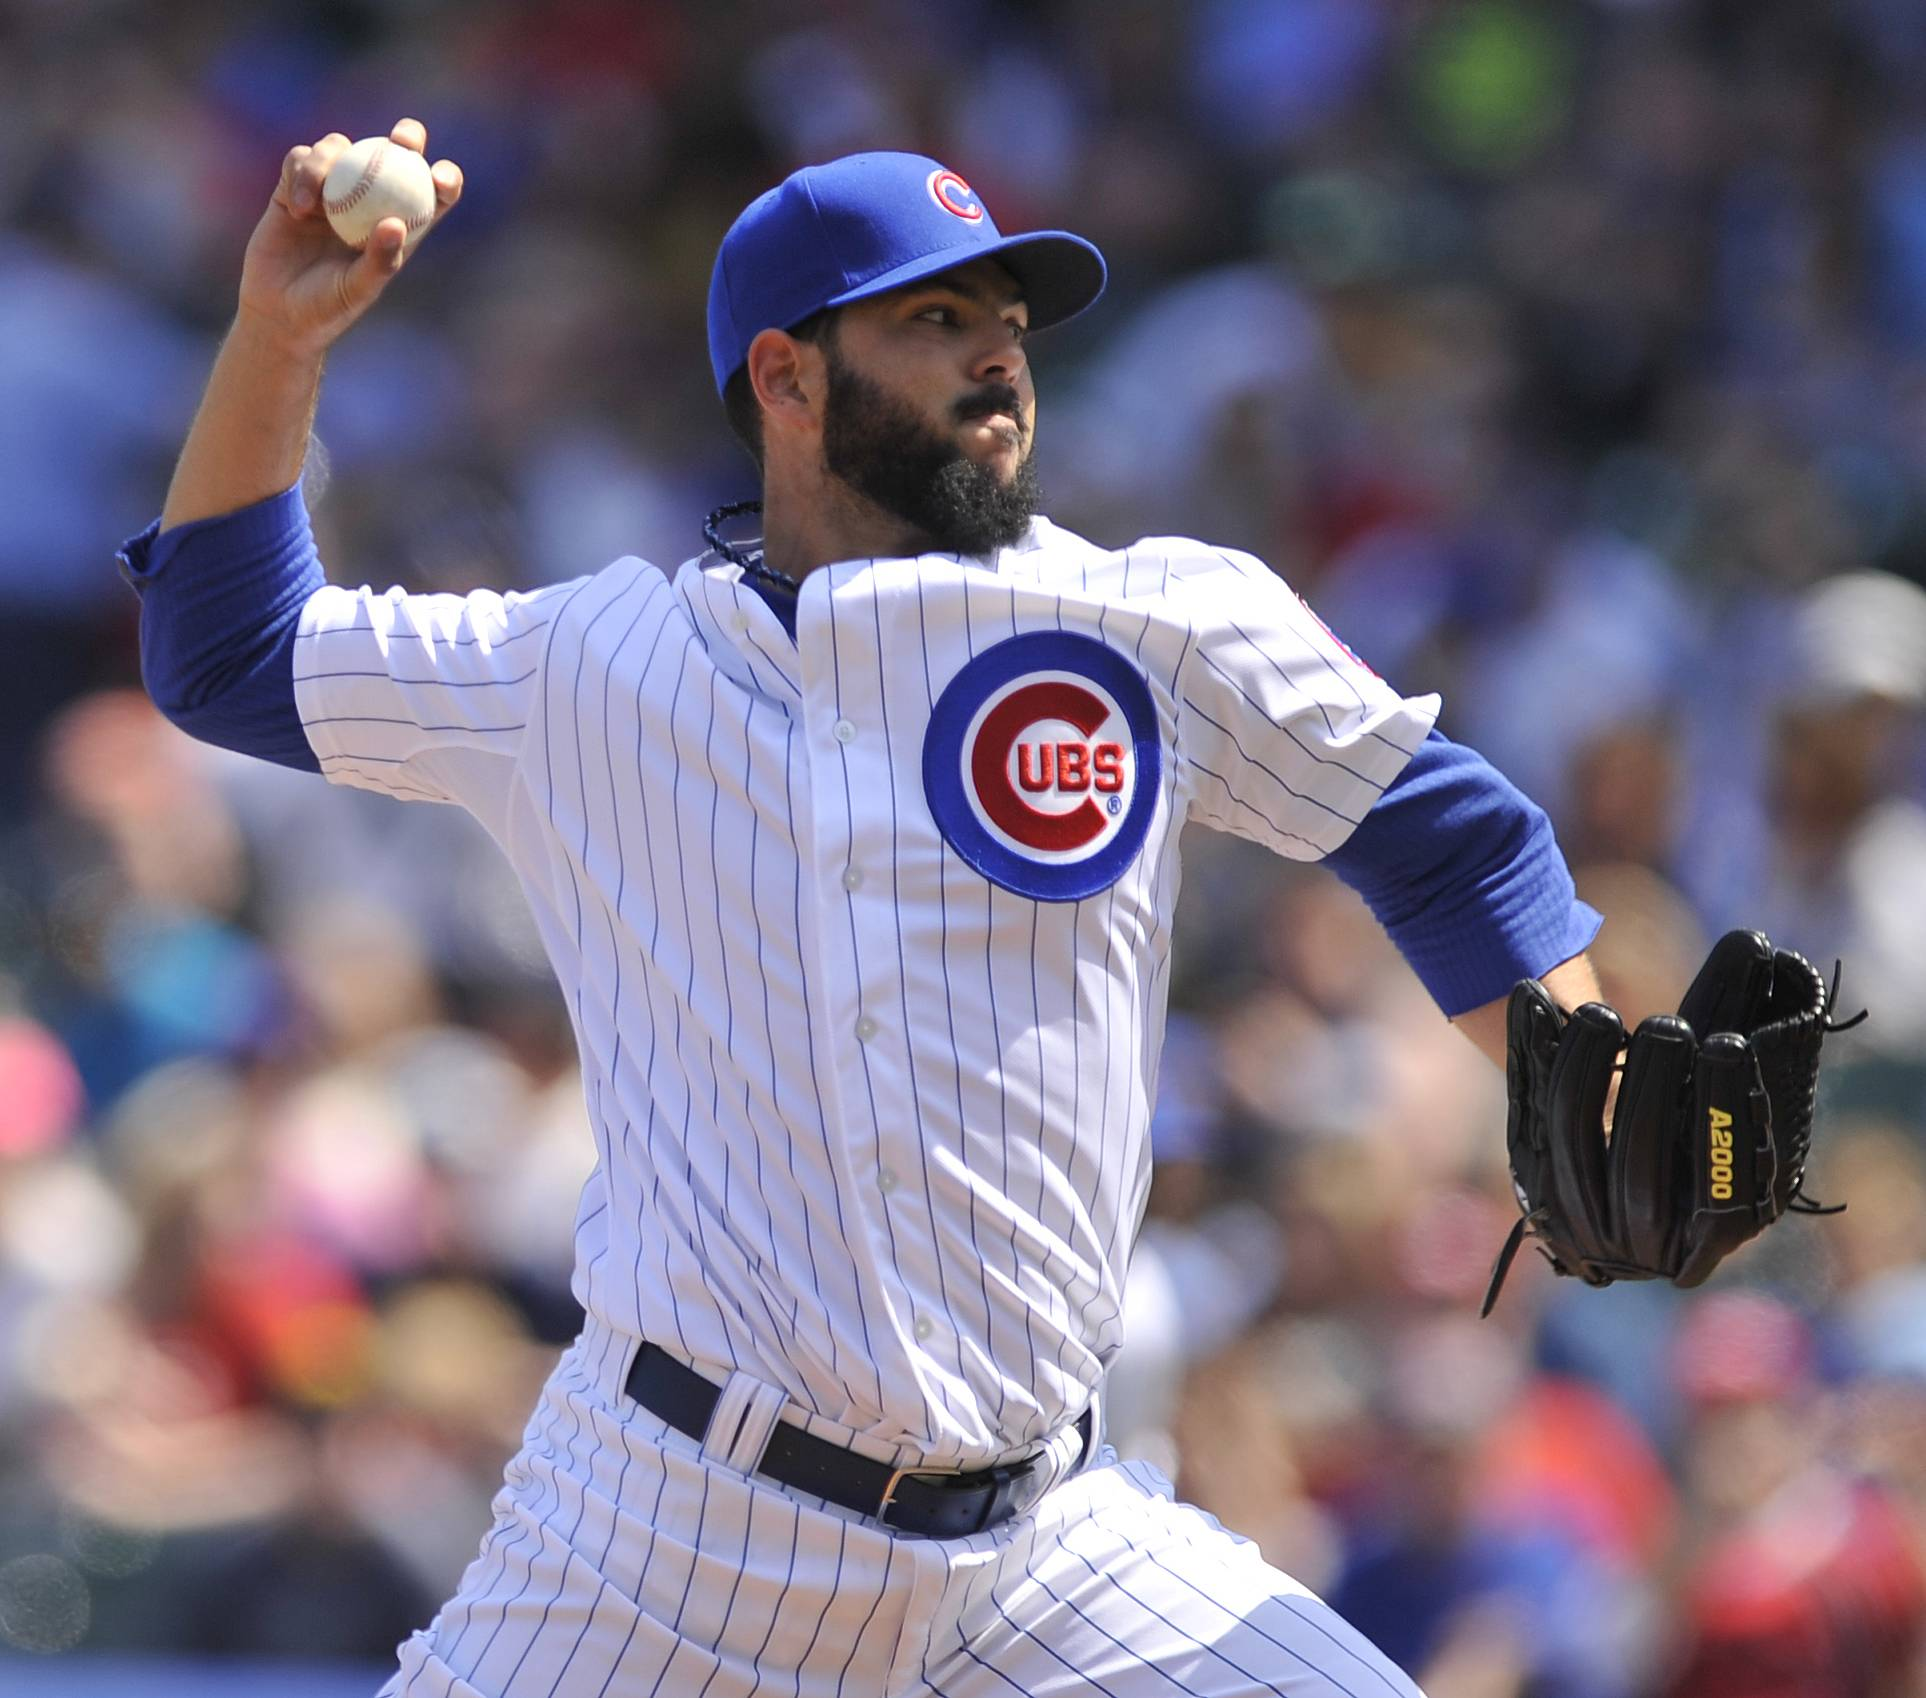 Cubs starter Carlos Villanueva threw 103 pitches in 4⅔ innings Sunday as his record slipped to 1-4 with the loss to the Reds.